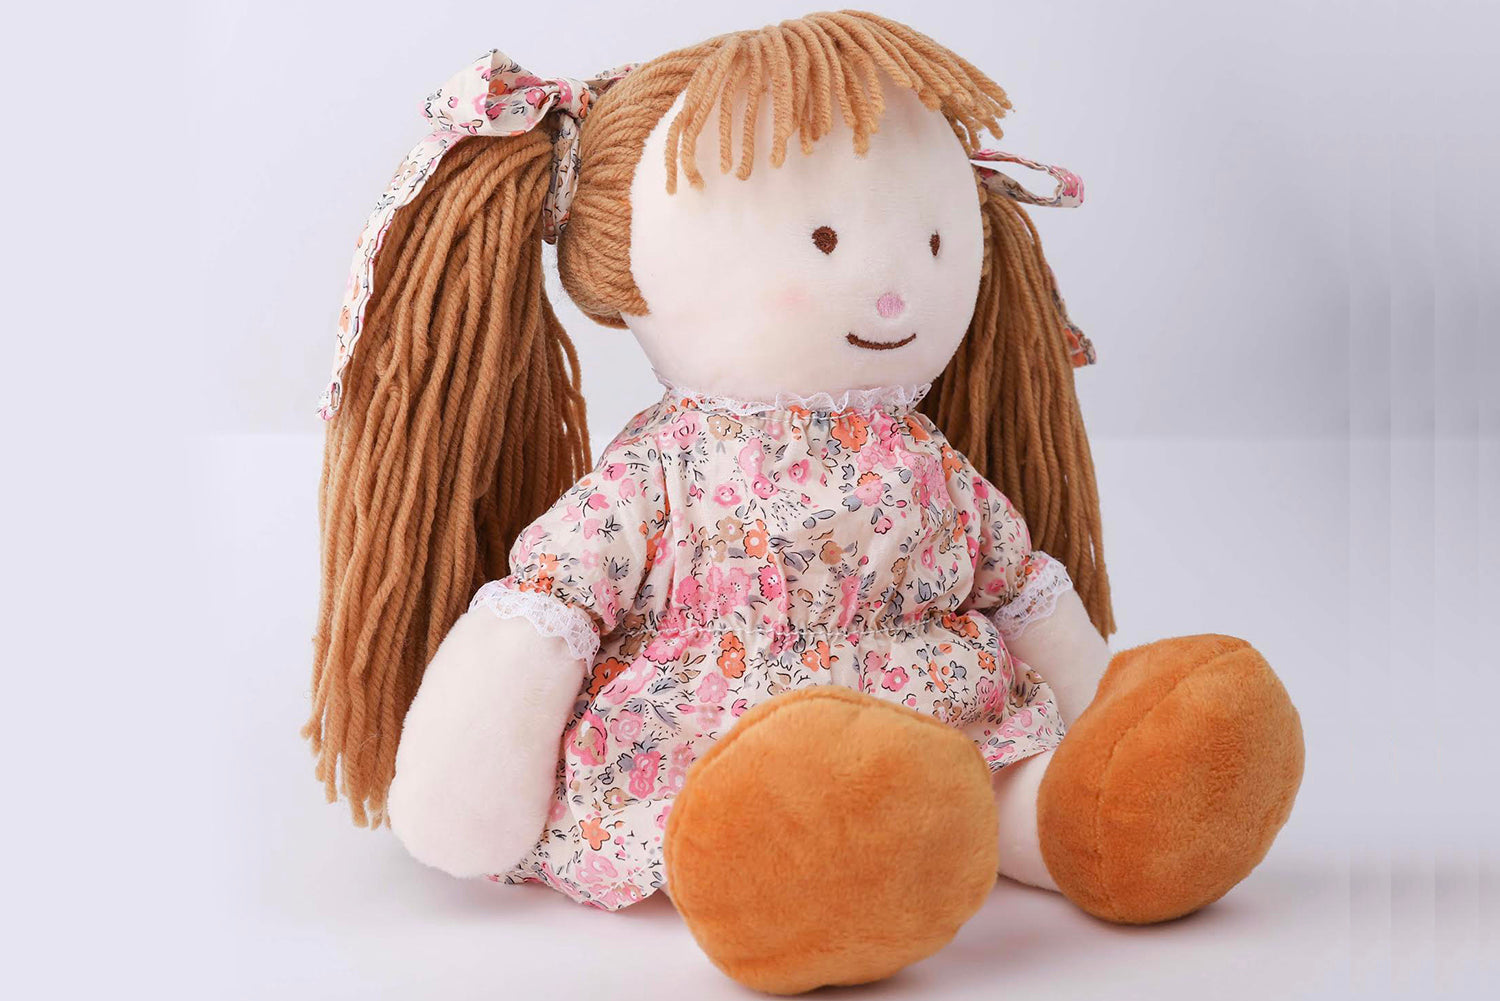 EASTER SPECIAL! Hanna Soft Doll - hand crafted with lots of love and care.